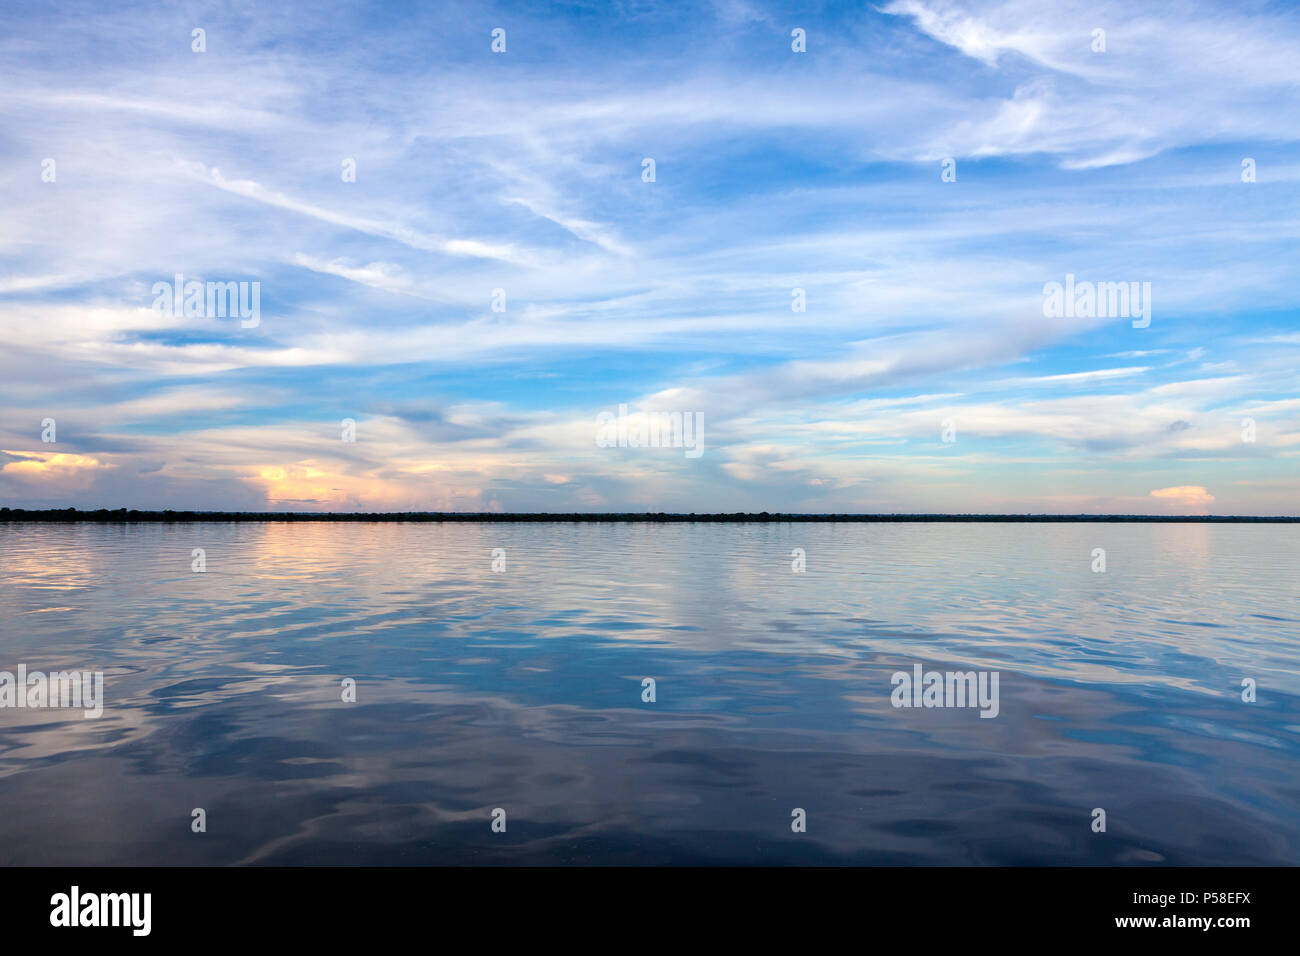 Amazonas, Brazil - River bank in the Amazon rainforest with textured dark waters of Negro river reflecting blue sky and clouds and the forest in the b - Stock Image